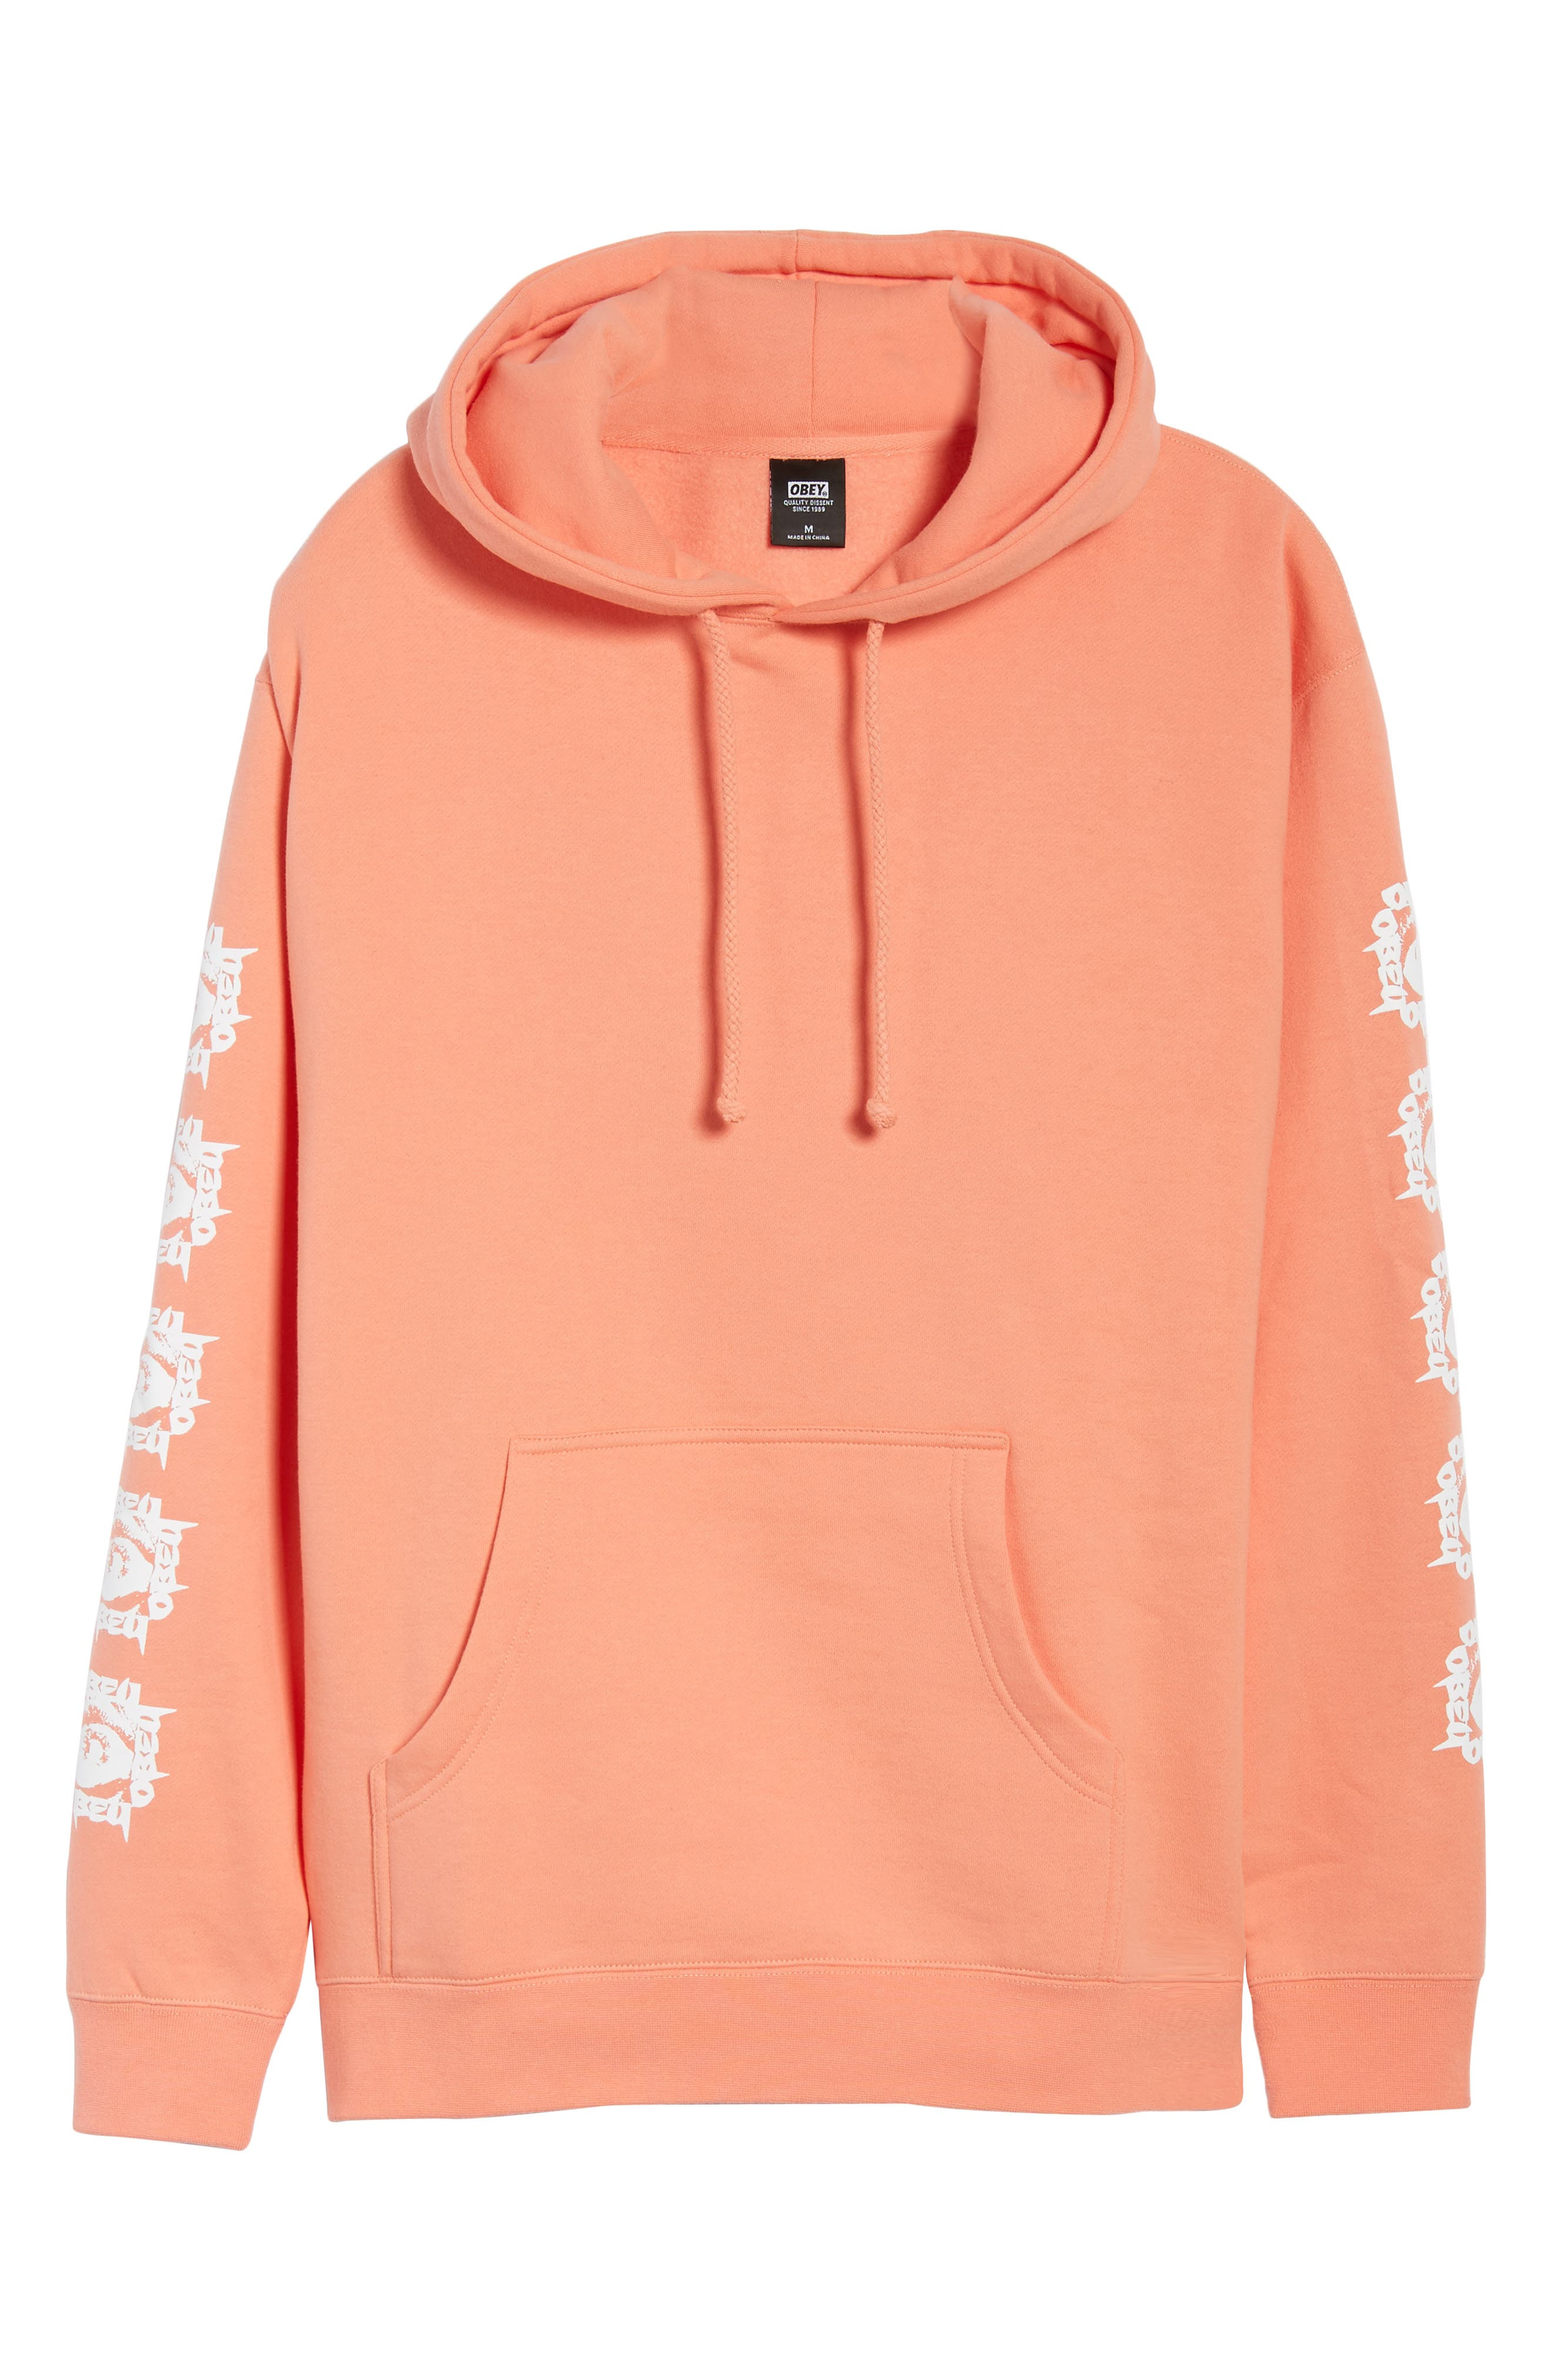 Tunnel Vision Hoodie Sweatshirt,                             Alternate thumbnail 6, color,                             Coral